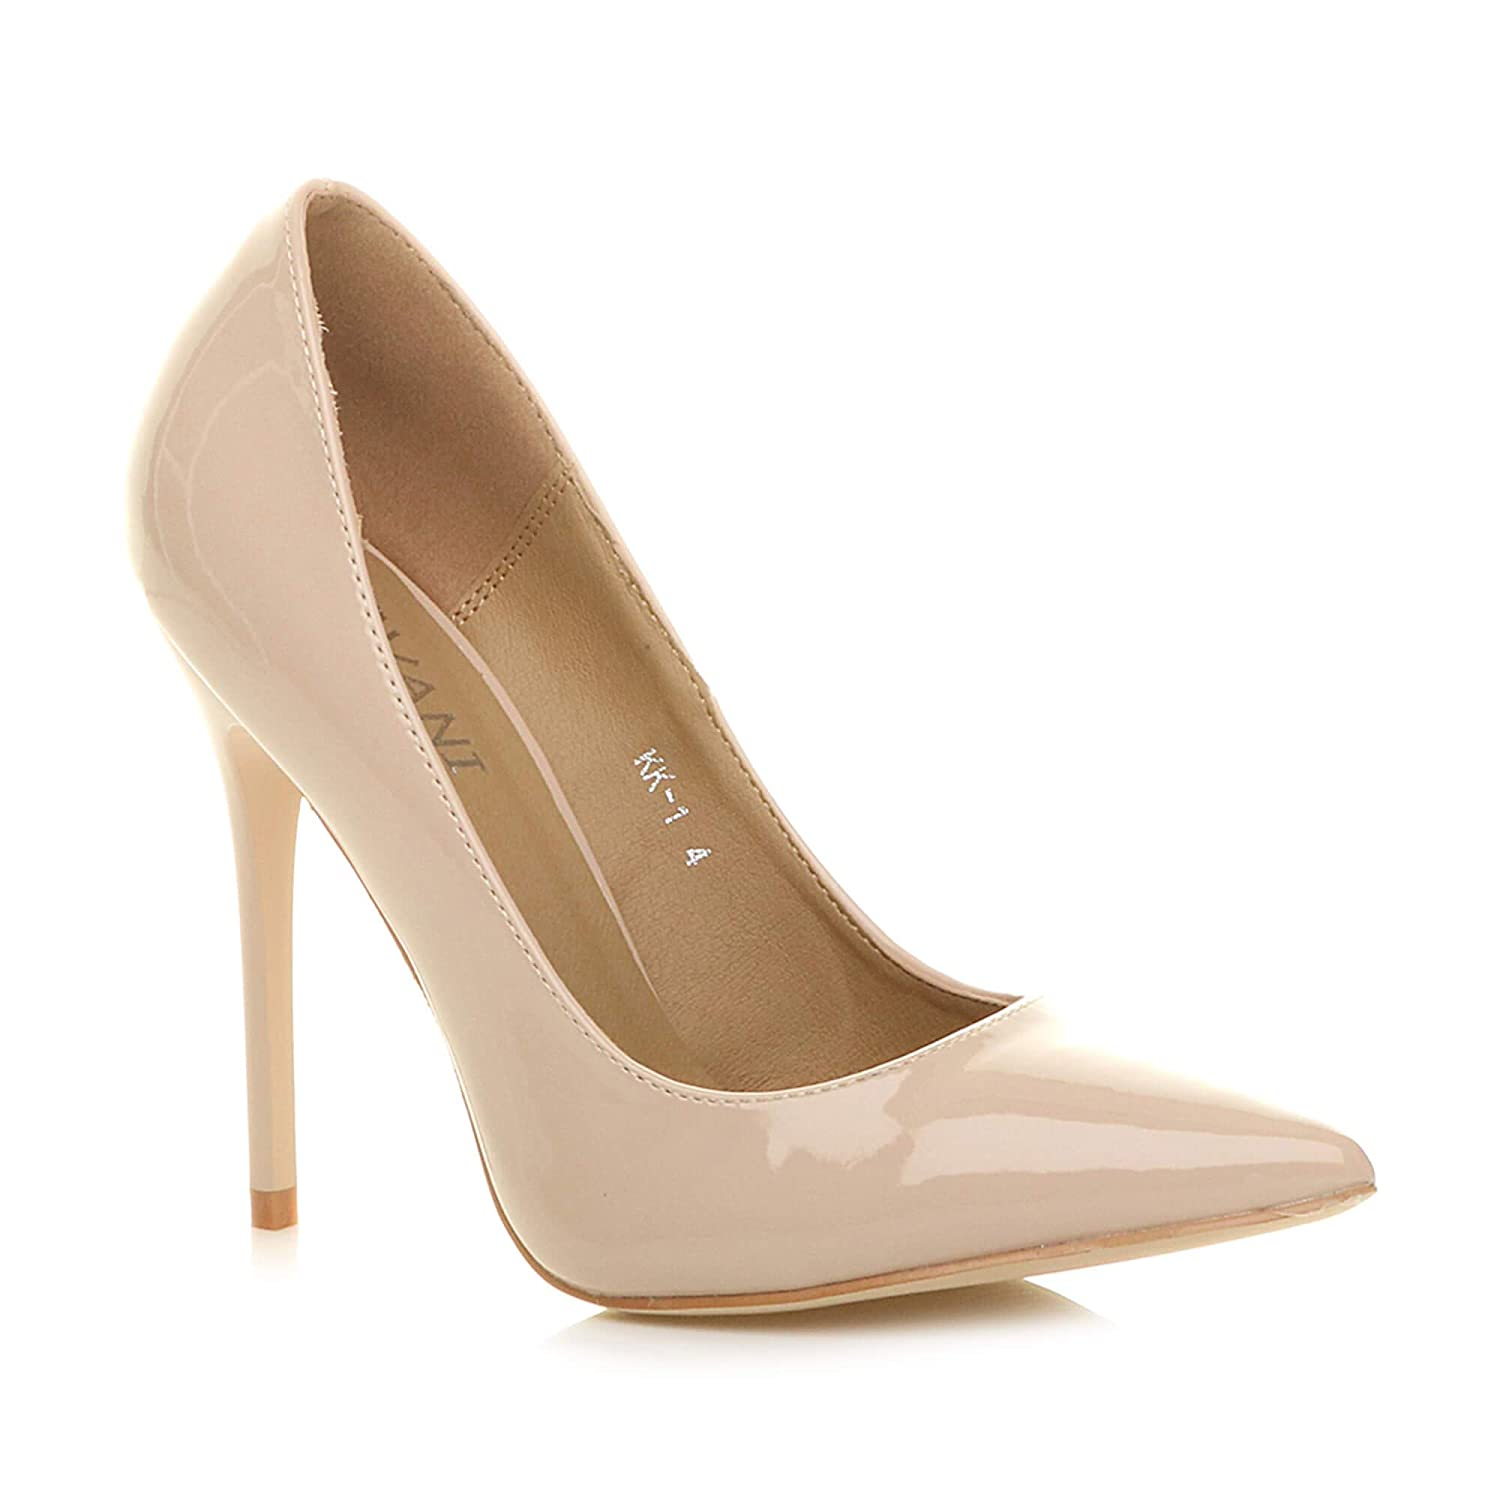 a0d3c470711c7 Ajvani Womens Ladies high Heel Pointed Contrast Court Smart Party Work  Shoes Pumps Size: Amazon.co.uk: Shoes & Bags